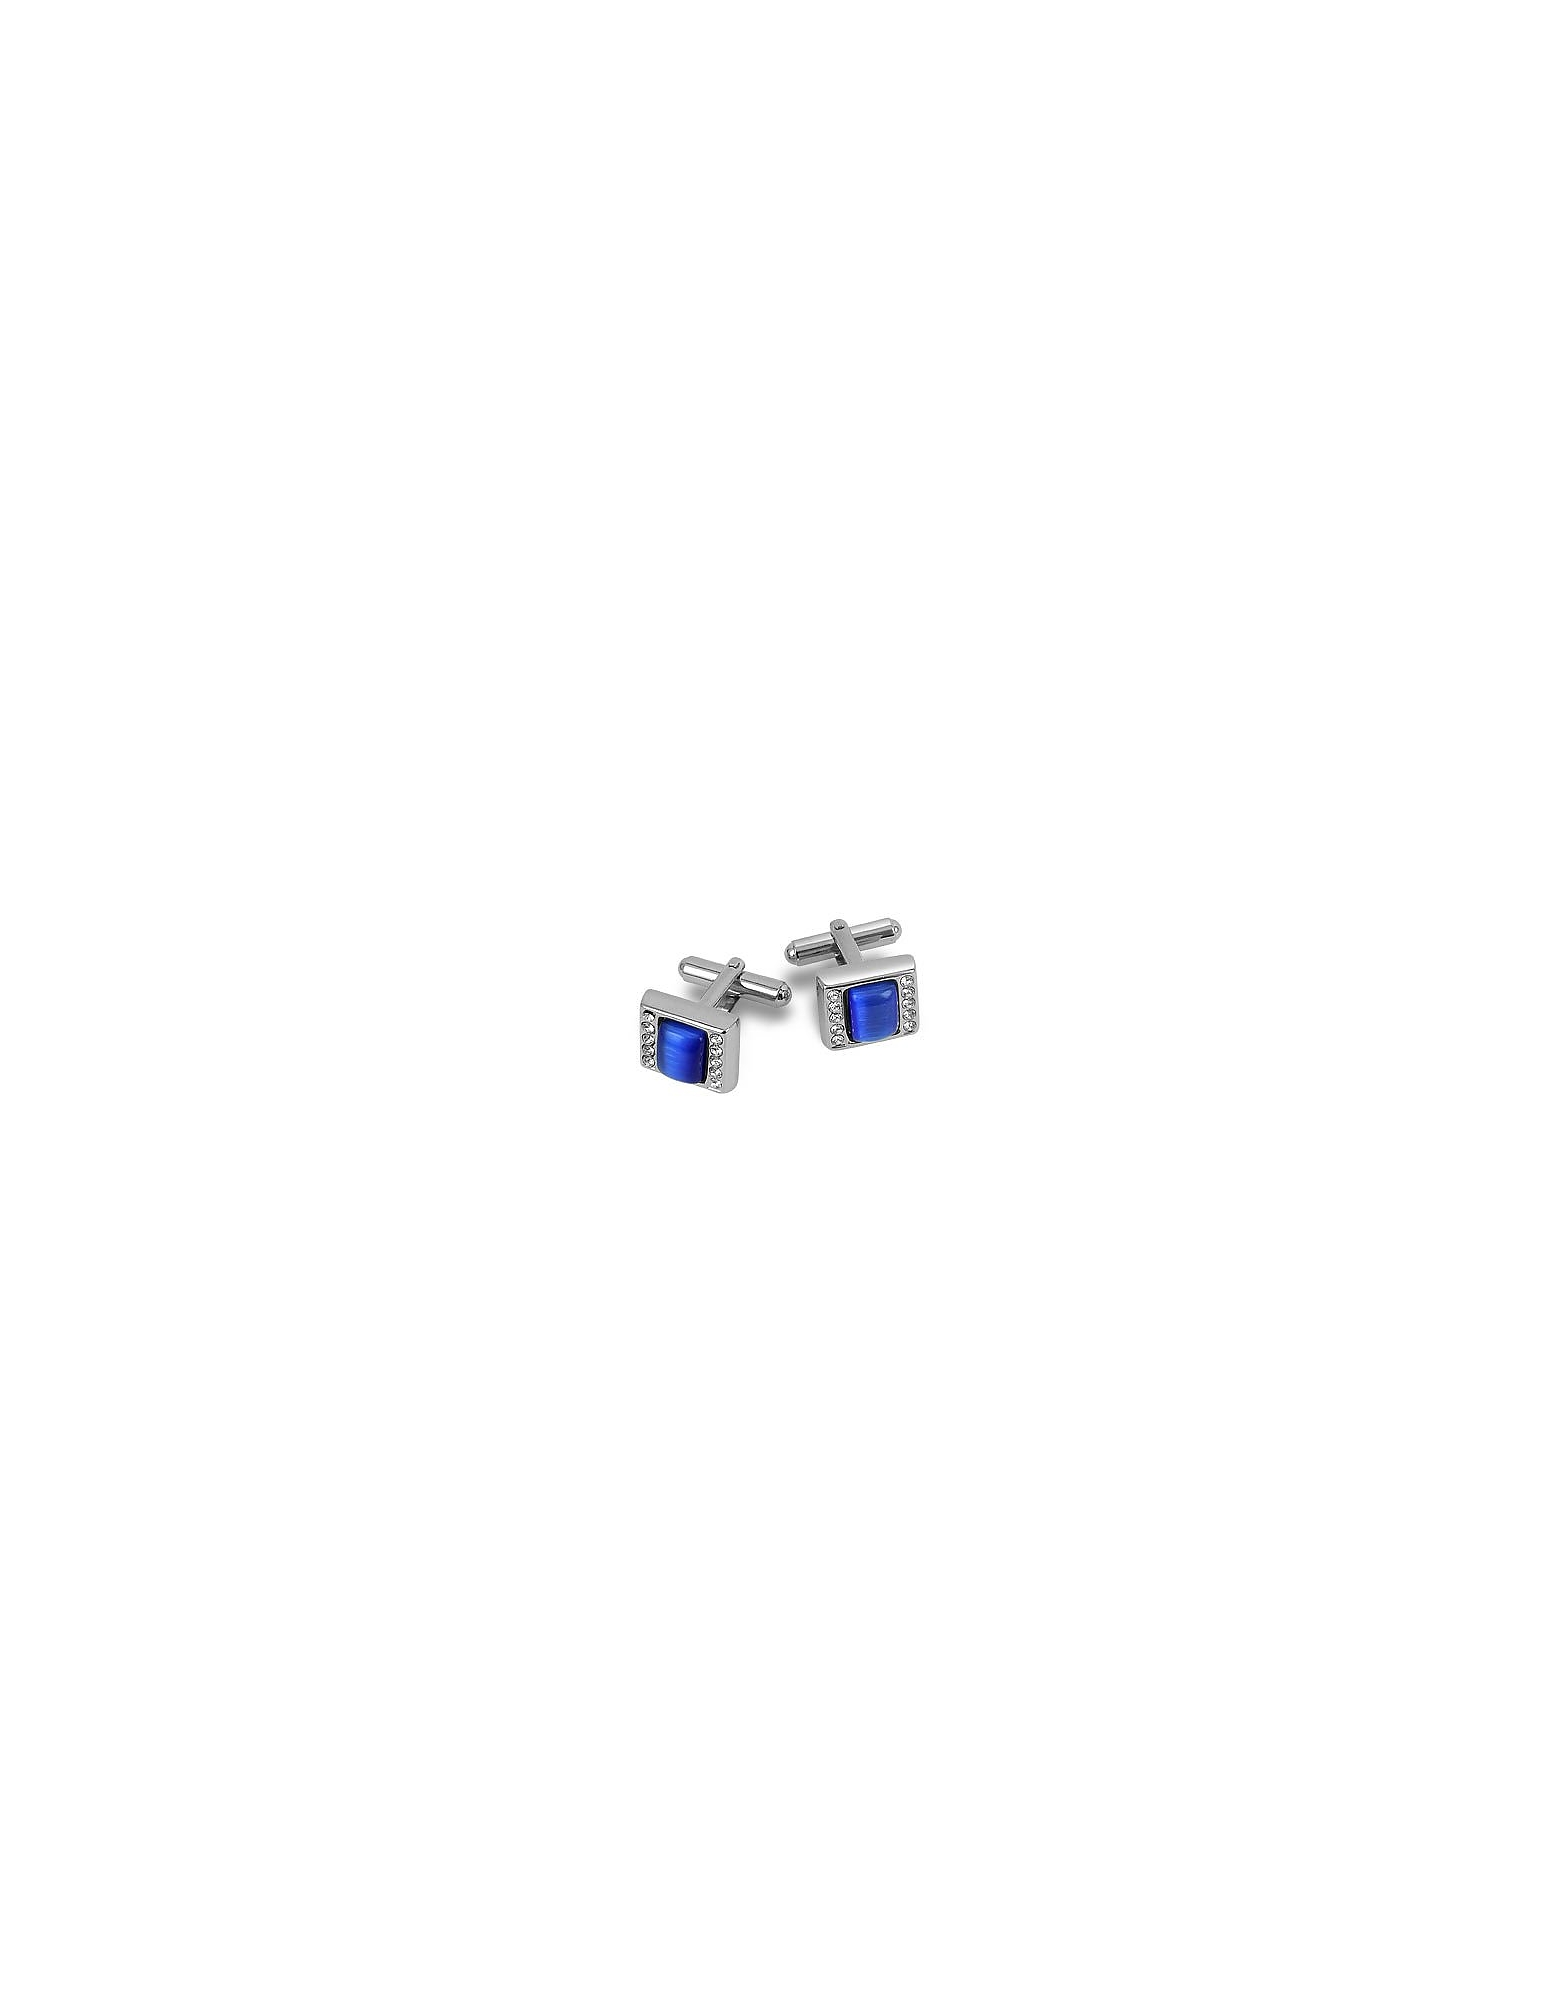 Forzieri Cufflinks, Blue Square Cufflinks